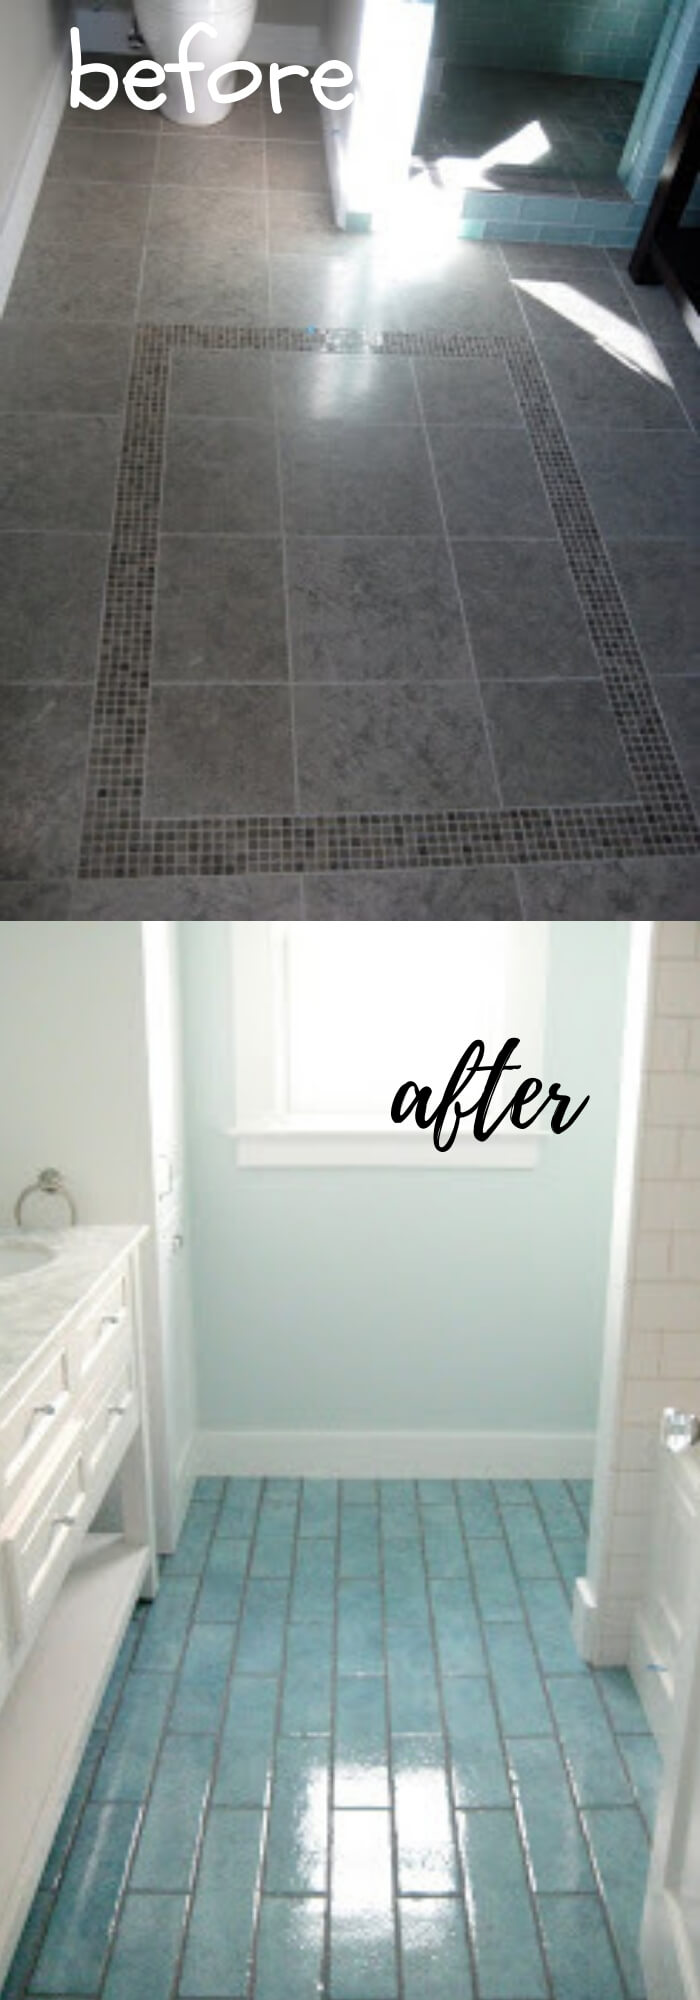 Remodel floor with Aqua Blue Tiles